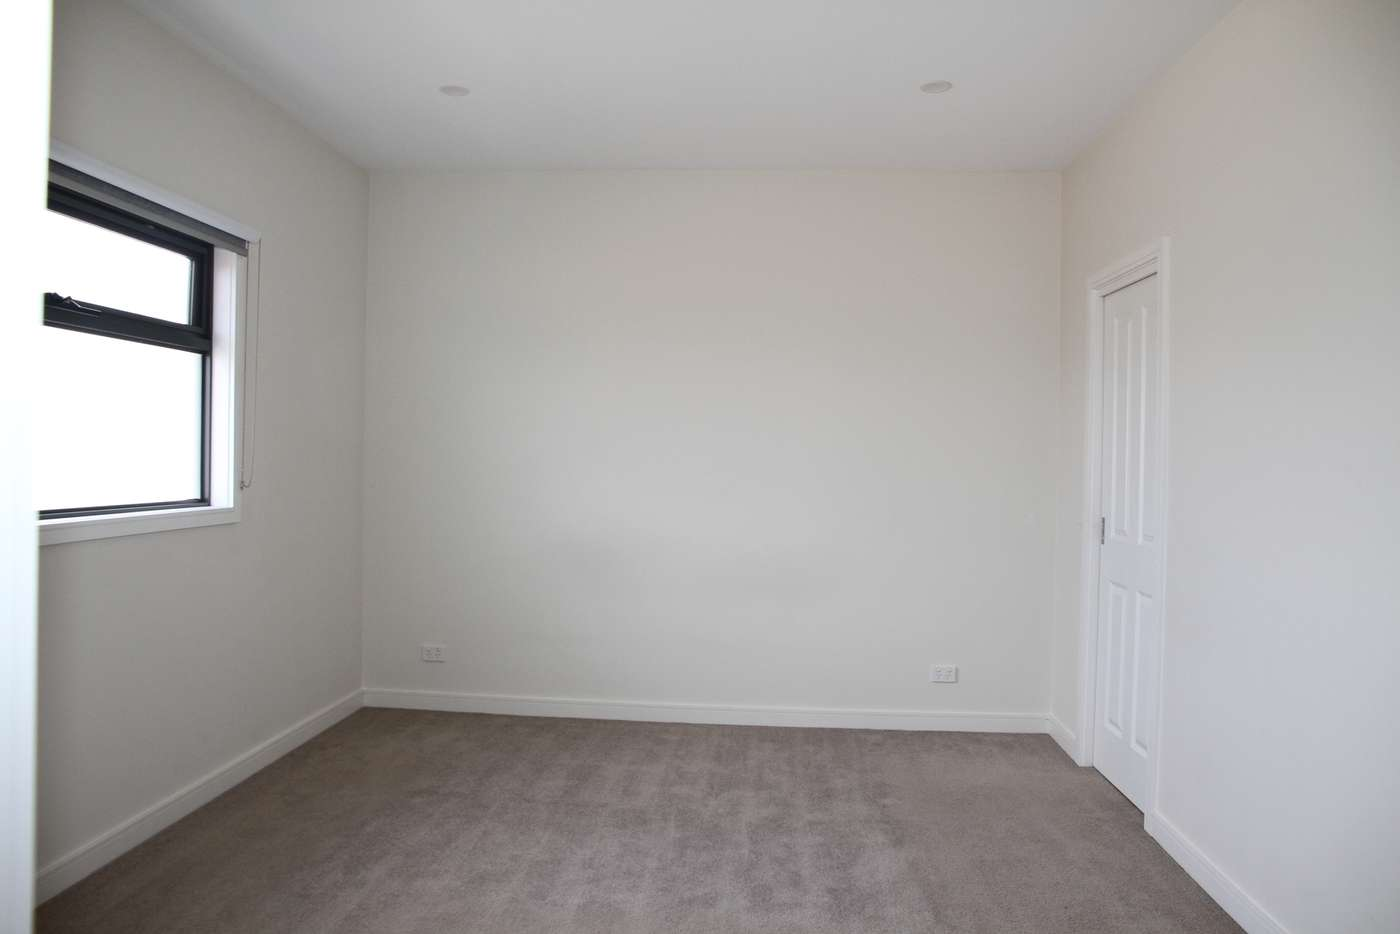 Sixth view of Homely townhouse listing, 2/23 Princess Avenue, Springvale VIC 3171